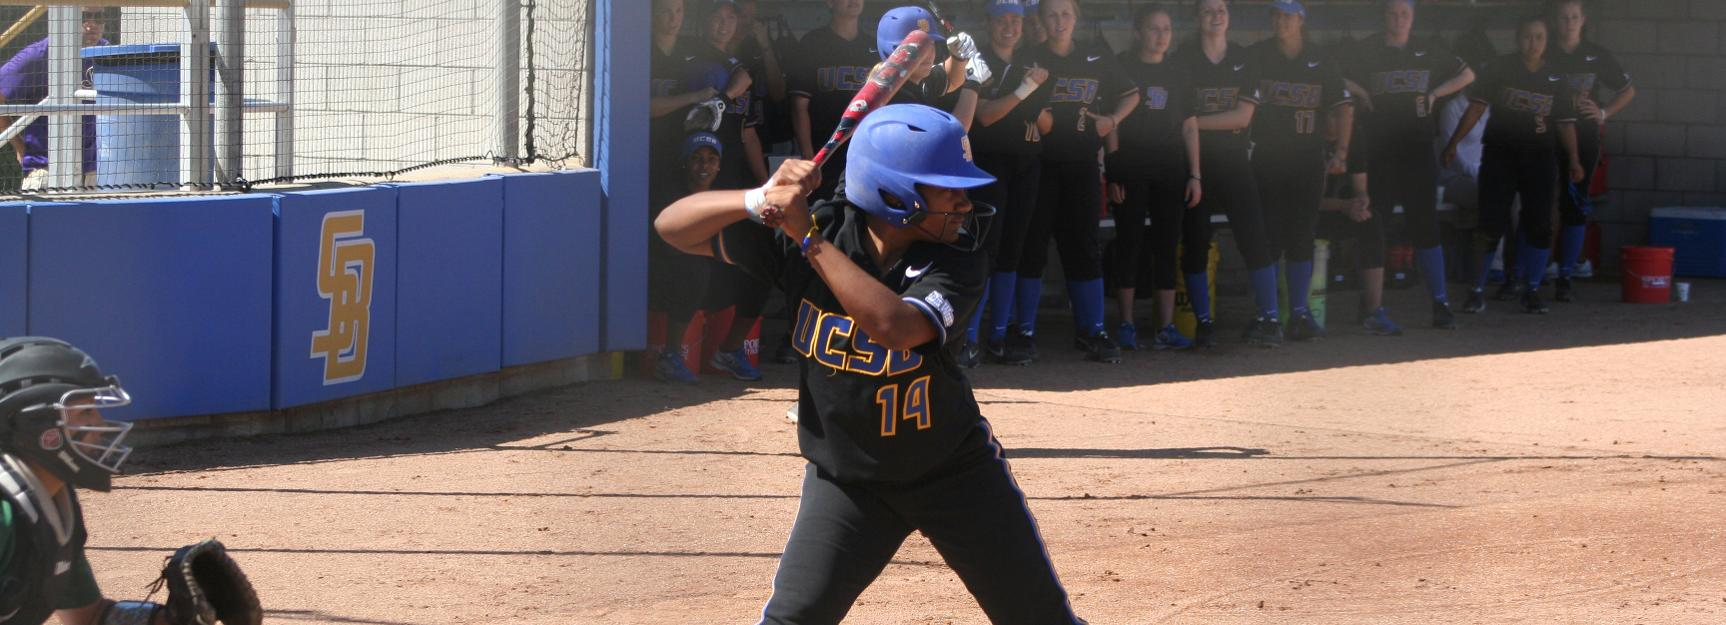 UCSB Splits Doubleheader with Hawai'i After Extra Inning Spectacles